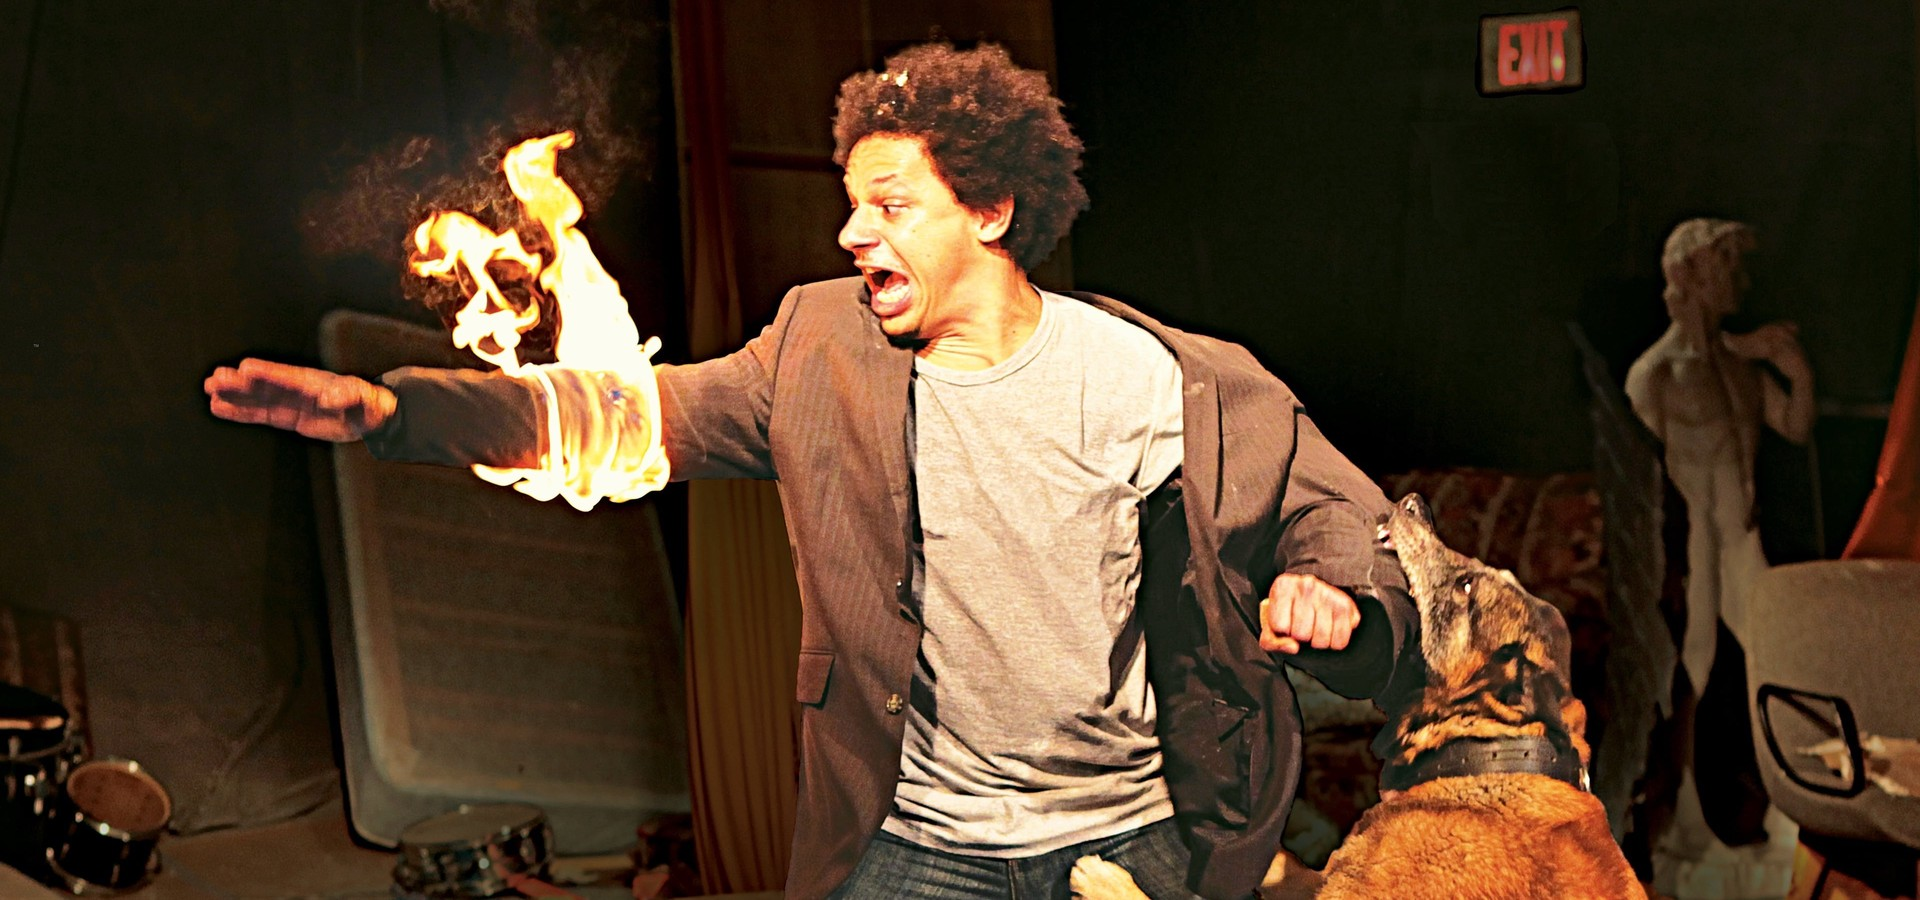 The Eric Andre Show